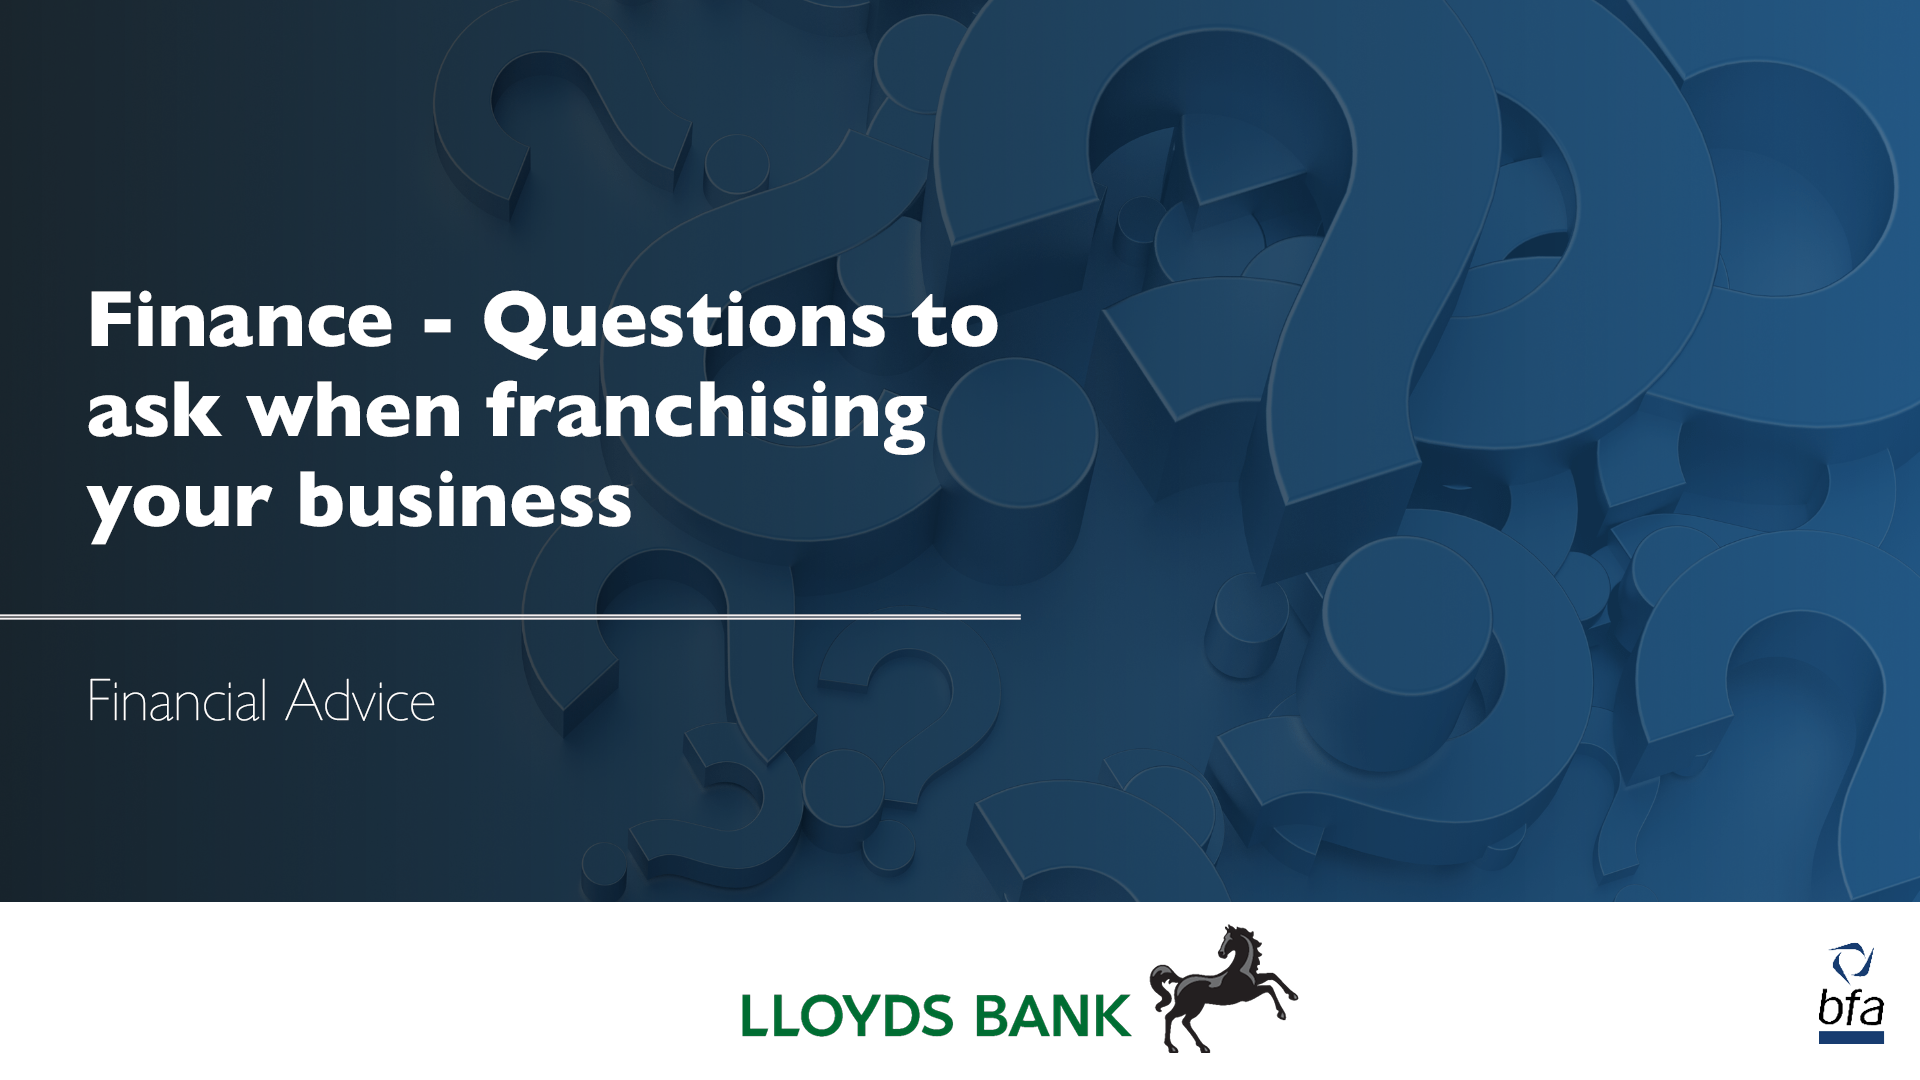 Finance – Questions to ask when franchising your business